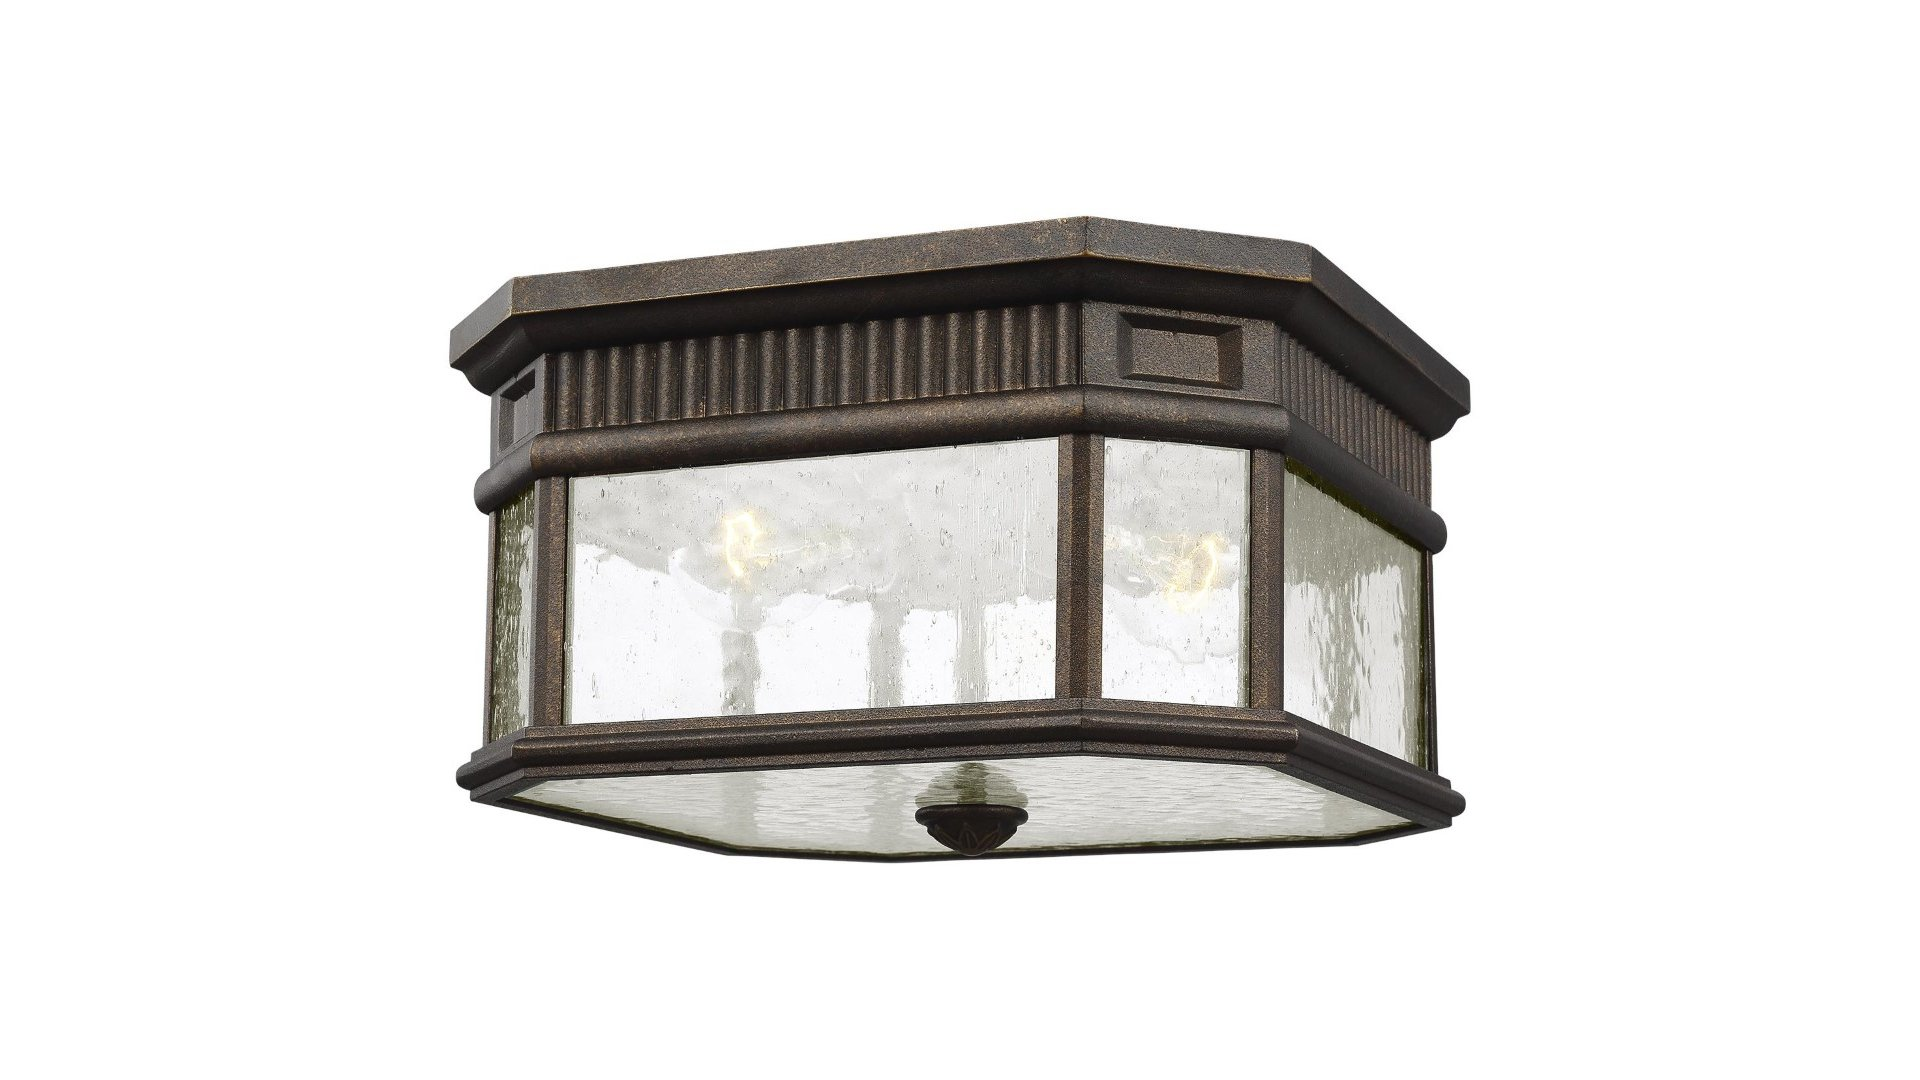 Feiss ol5433gbz cotswold outdoor flush mount ceiling